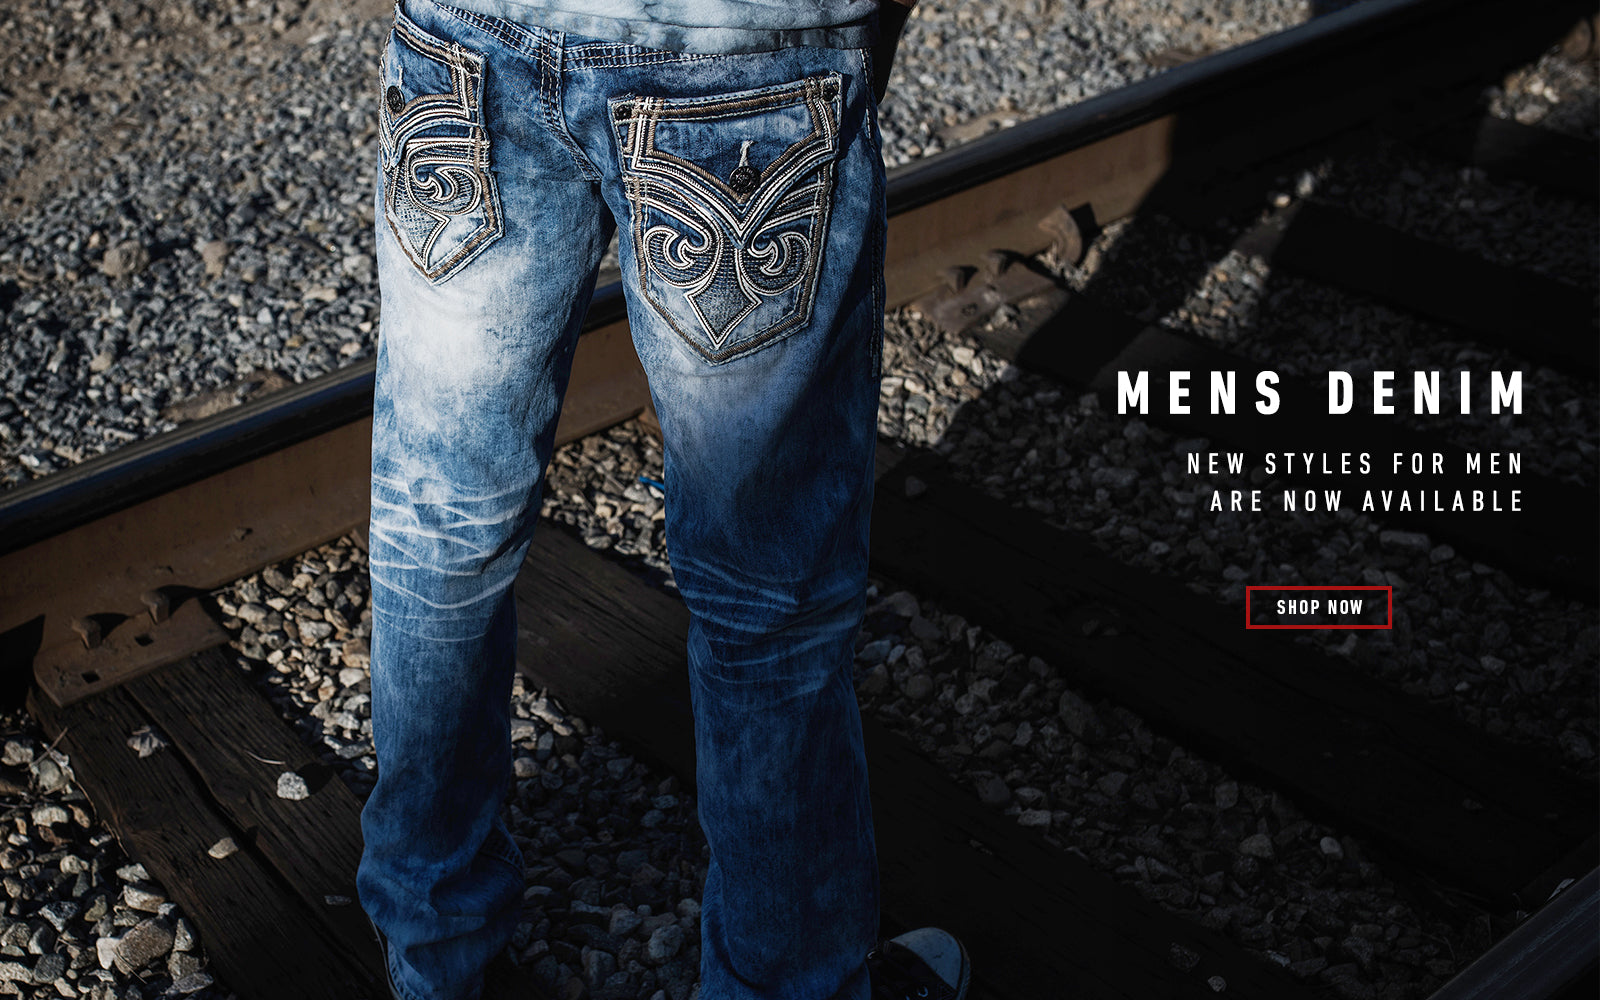 mens denim new styles for men are now available shop now